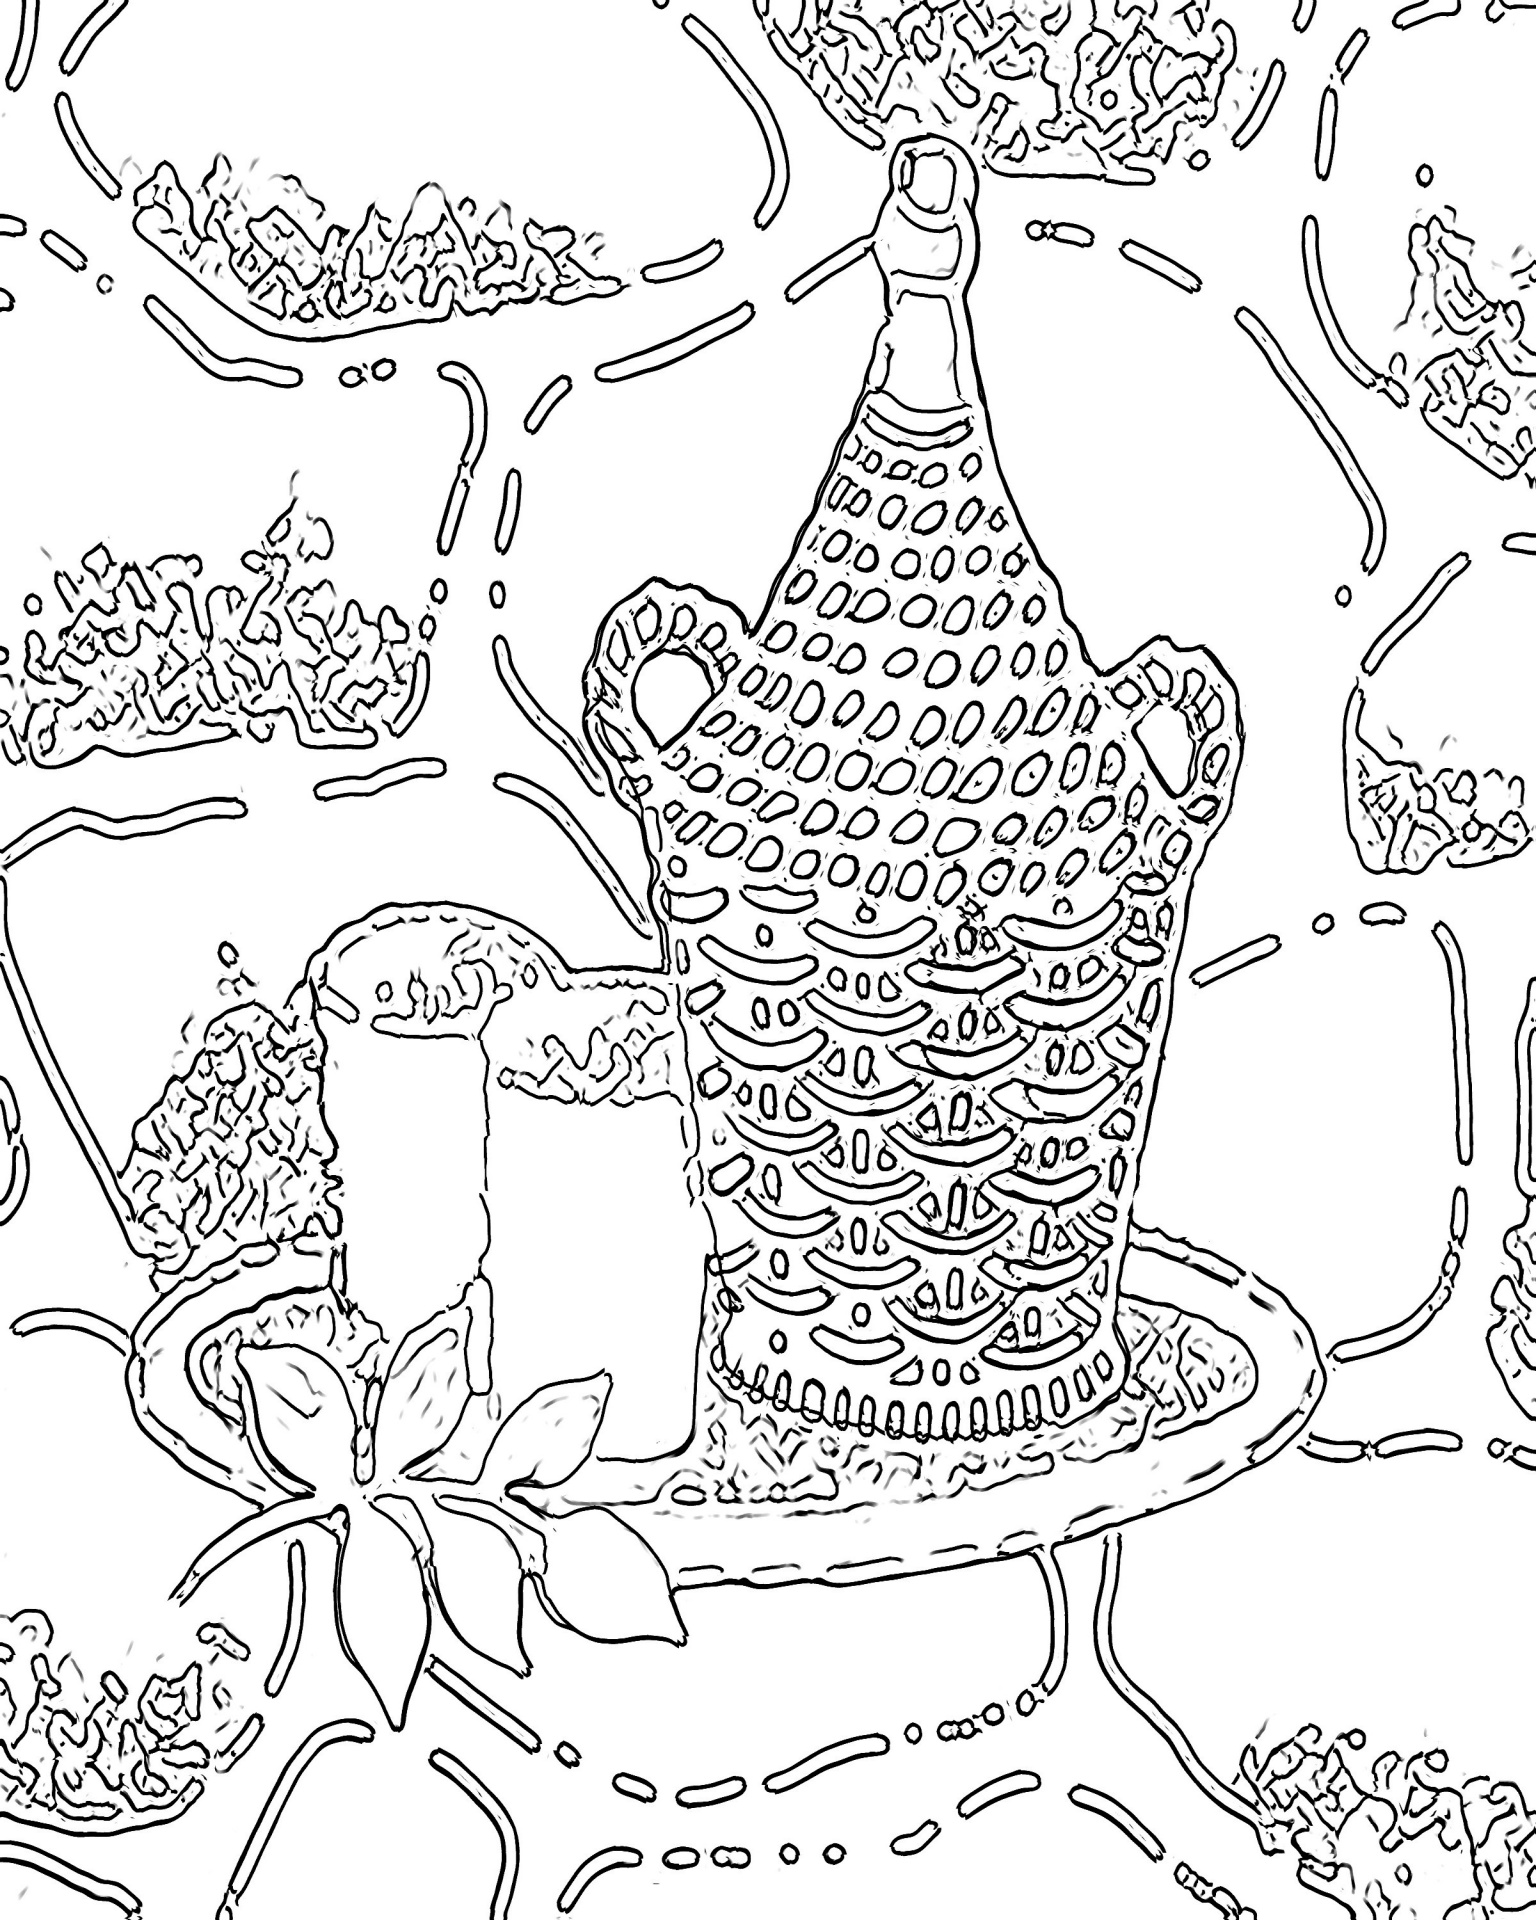 coloring pages for adults printable elephant coloring pages for adults best coloring pages pages for coloring printable adults